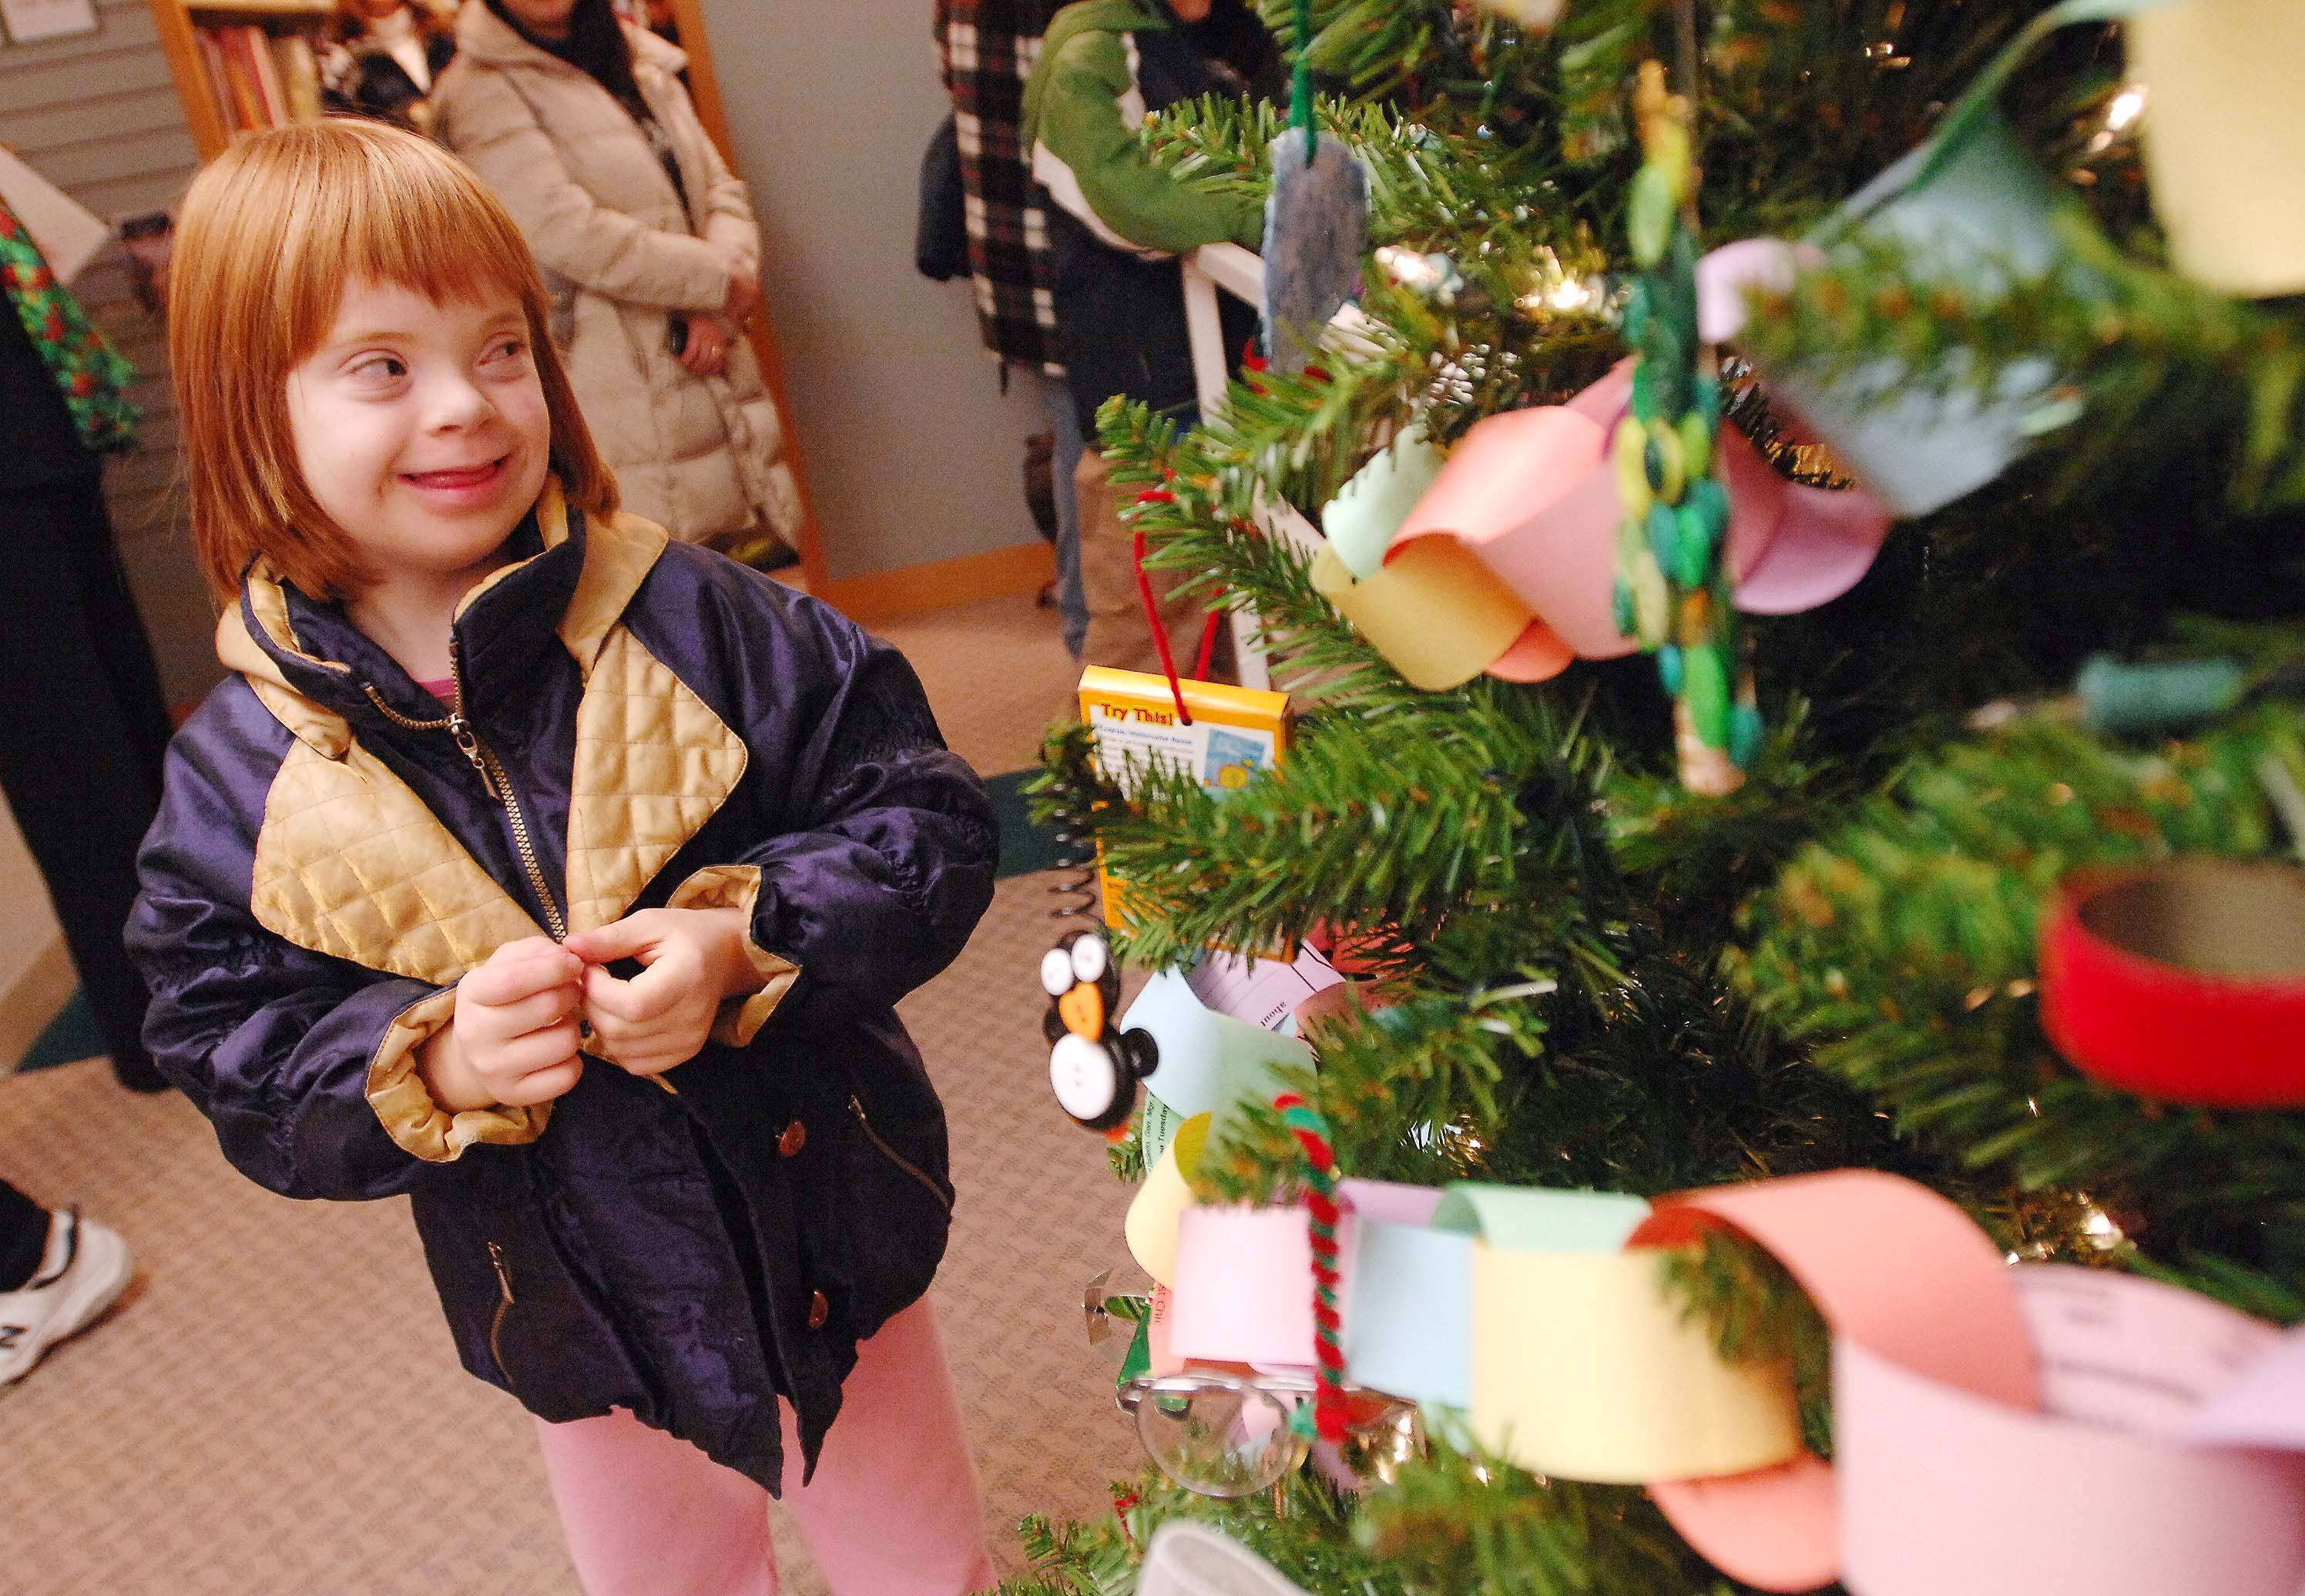 Hailey Casperson, 9, of Itasca looks at one of the 12 decorated trees on display during the Santa Comes to Town Christmas program at Itasca community Library Tuesday.